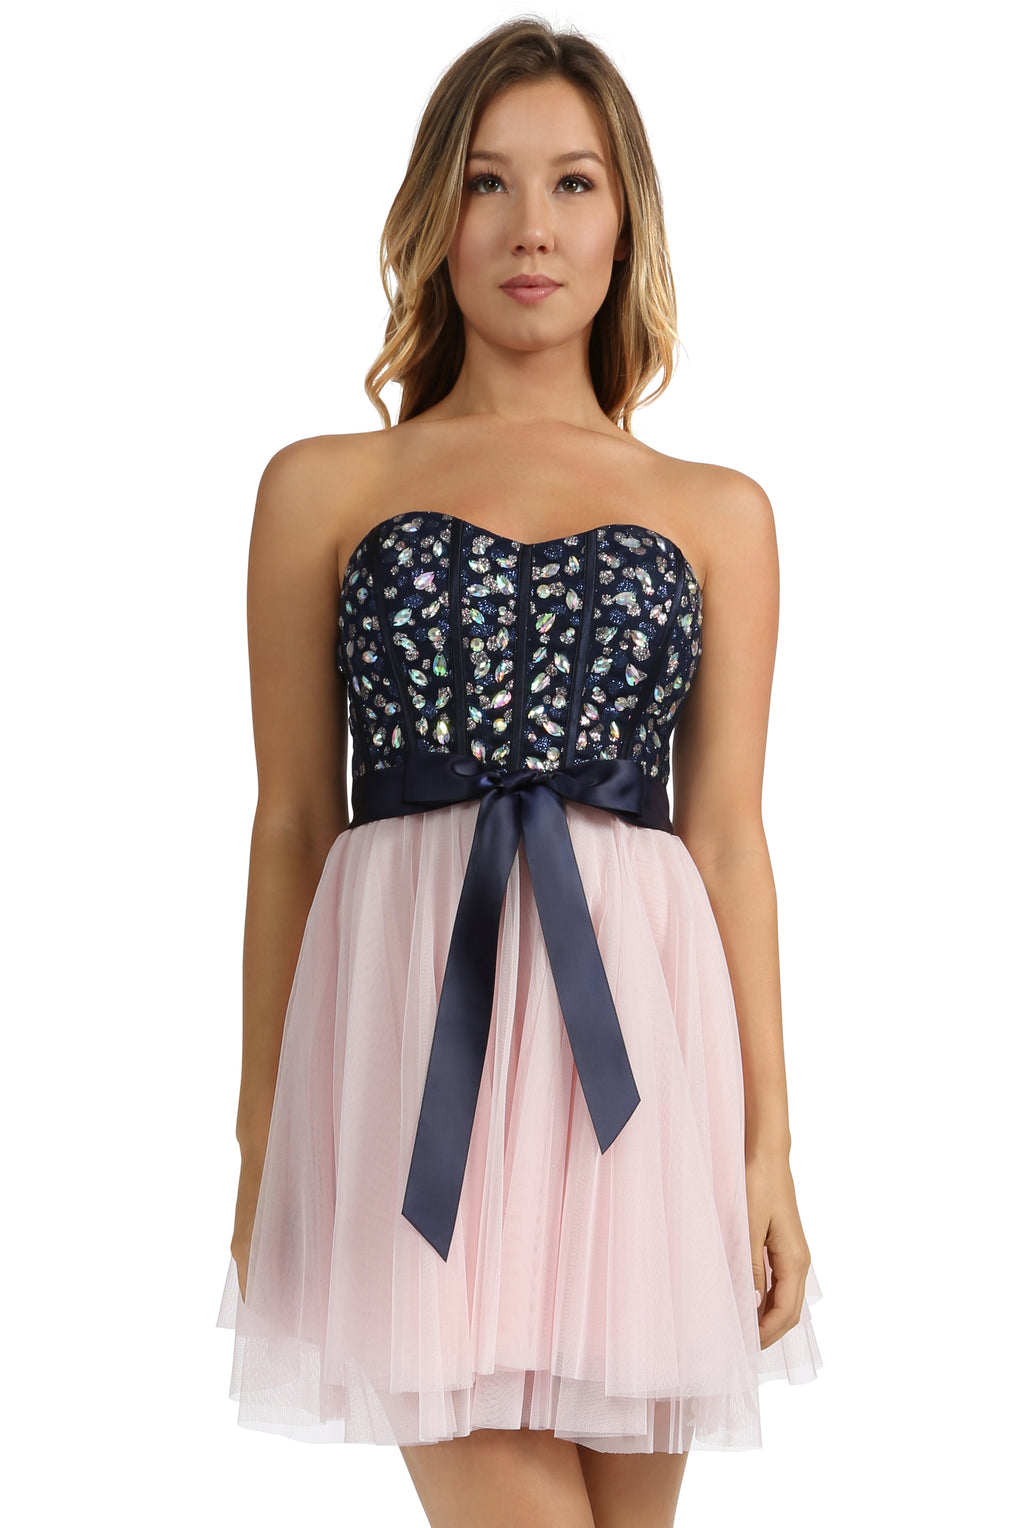 Teeze Me | Queen Colleen Strapless Corset Jewel Beaded Full Tulle Skirt Party Dress | Navy/Blush - Teeze Me